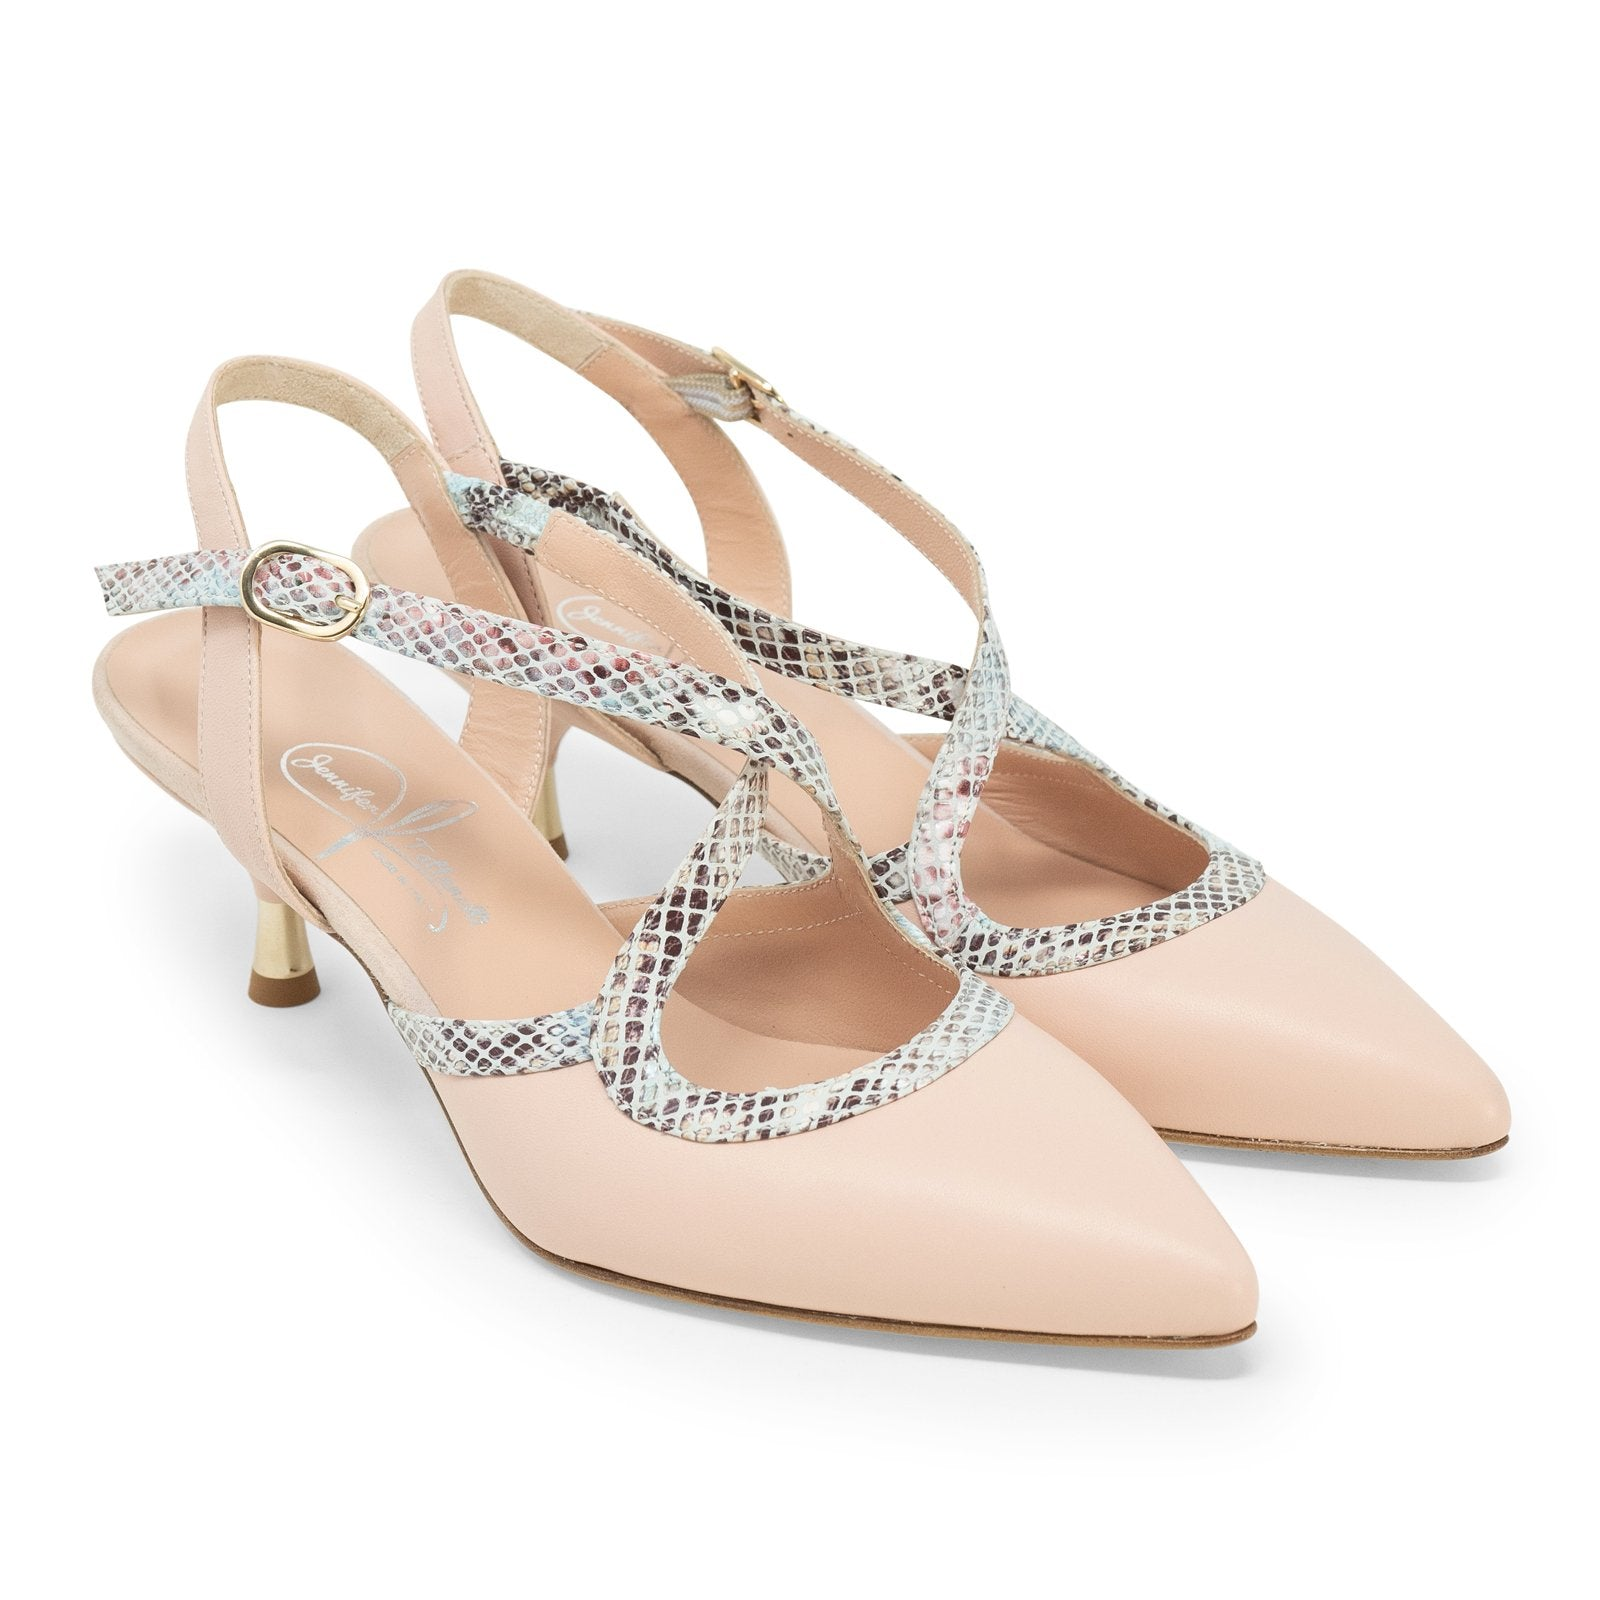 DDL4818 T50 Women Pumps - Jennifer Tattanelli Signature Collection